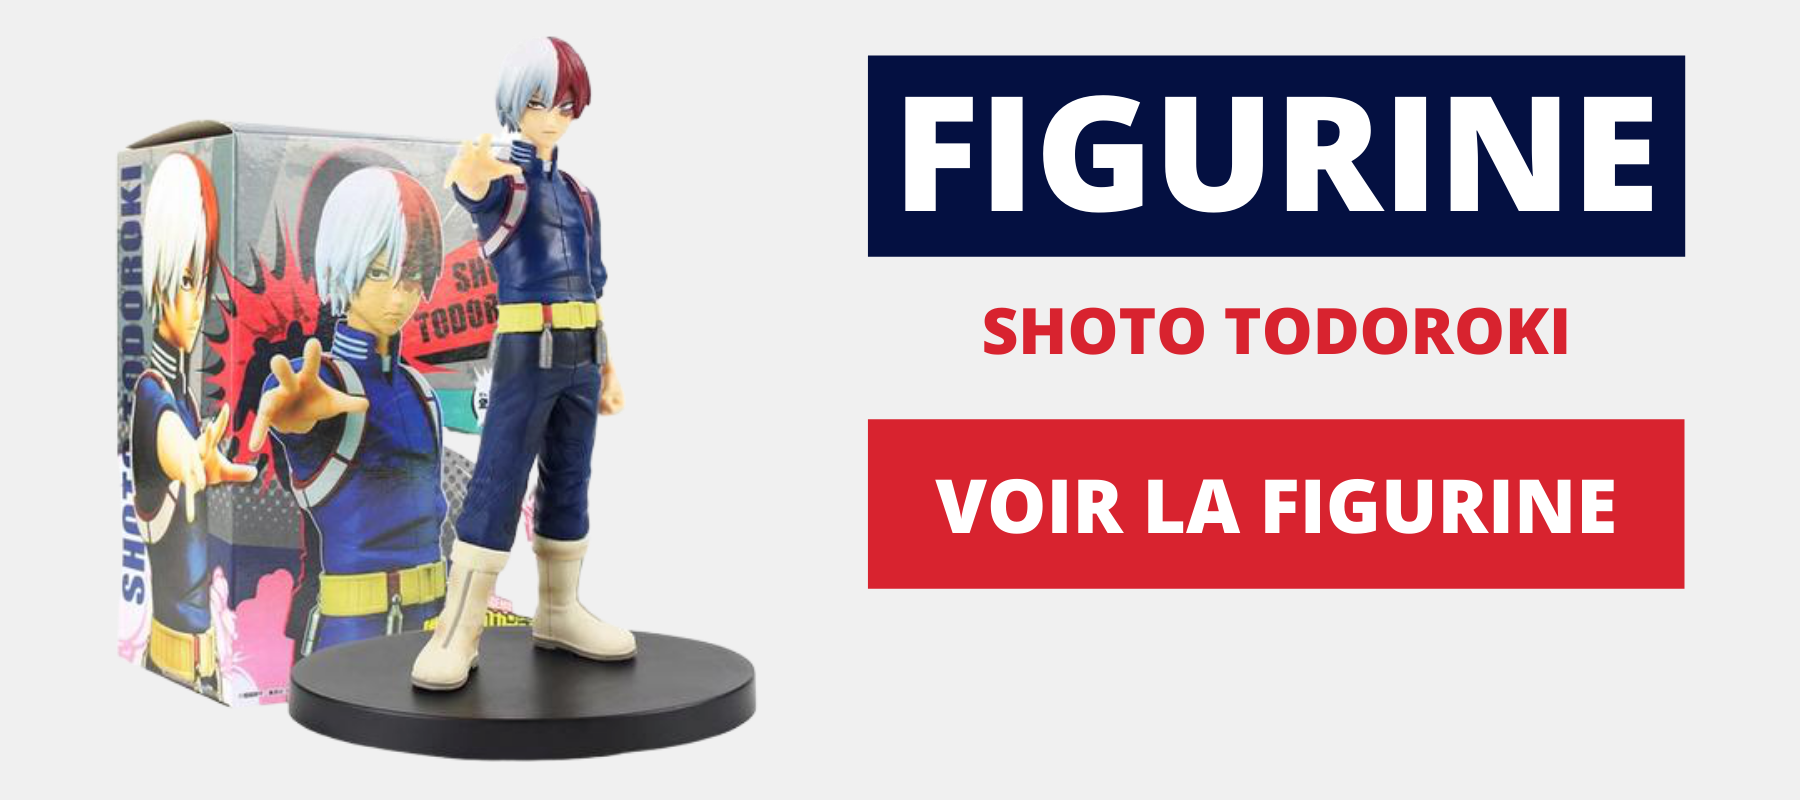 figurine shouto